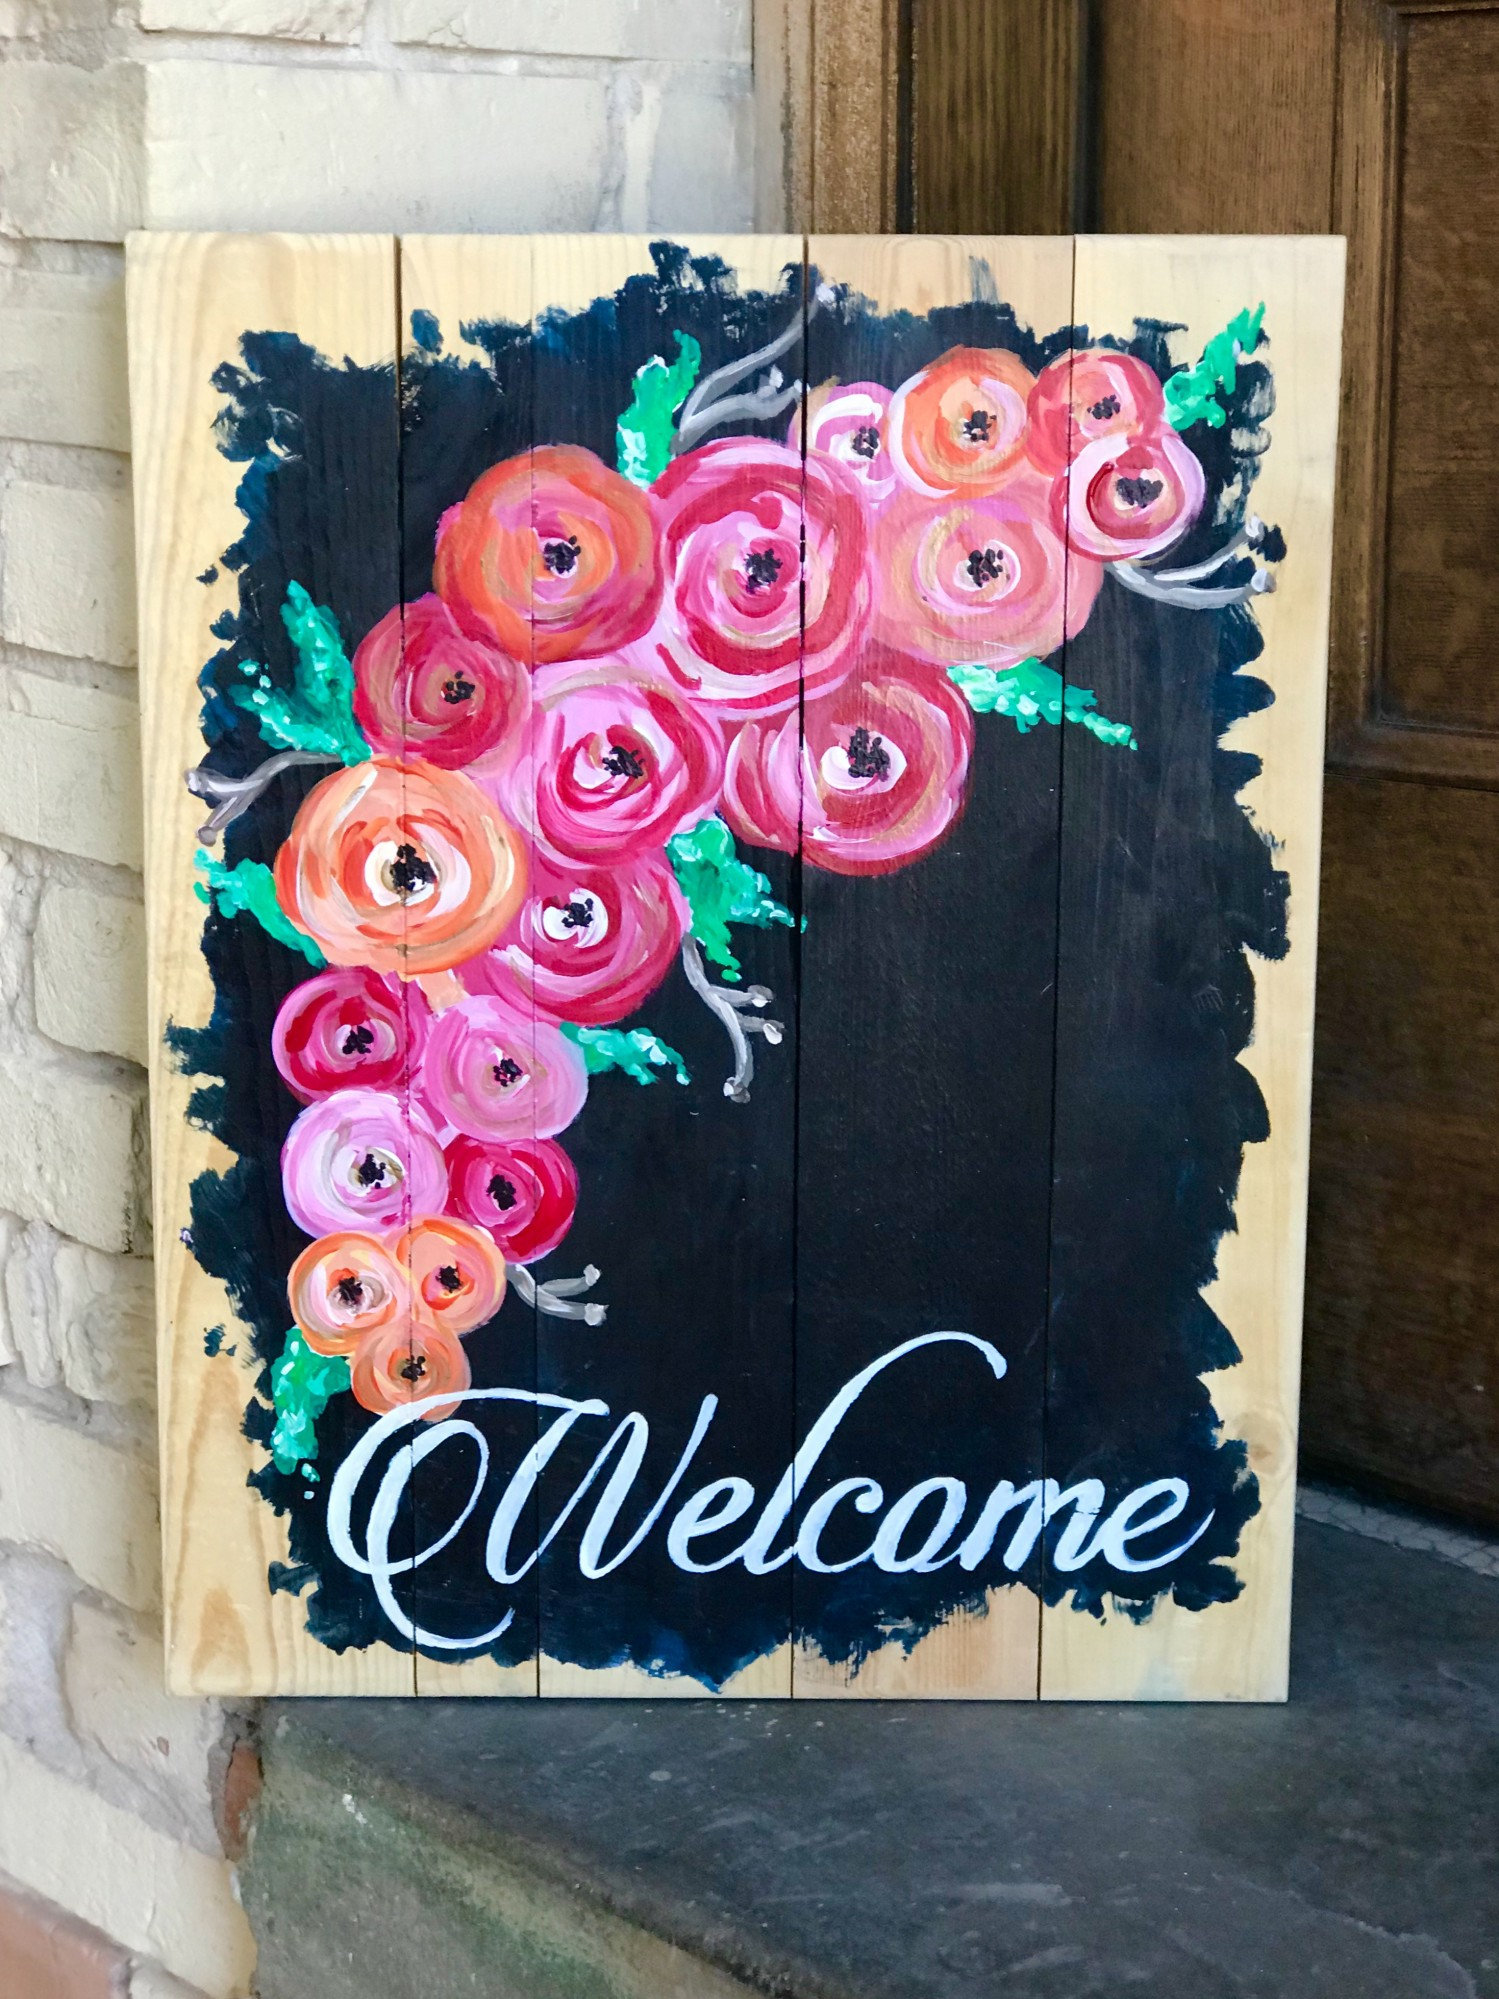 Welcome on Wood Pallet - Downtown Grand Rapids